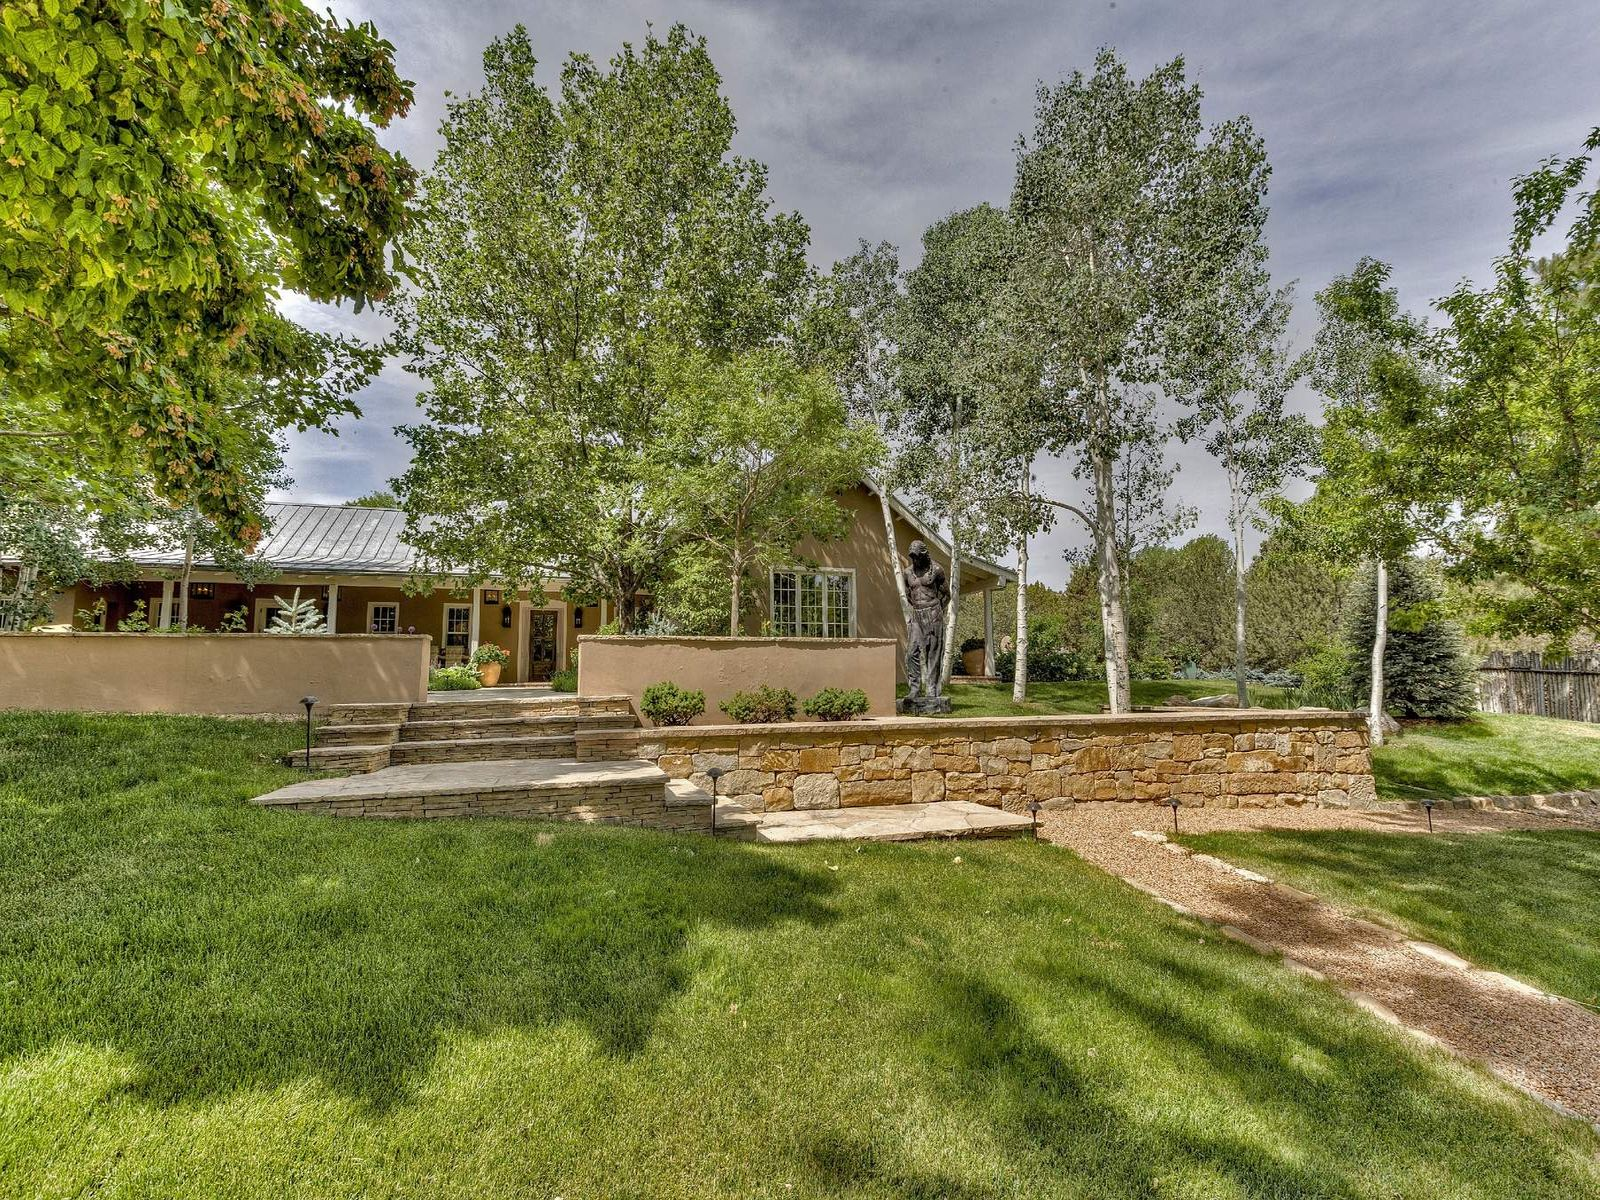 1434-A Bishops Lodge Road, Santa Fe NM Single Family Home - Santa Fe Real Estate